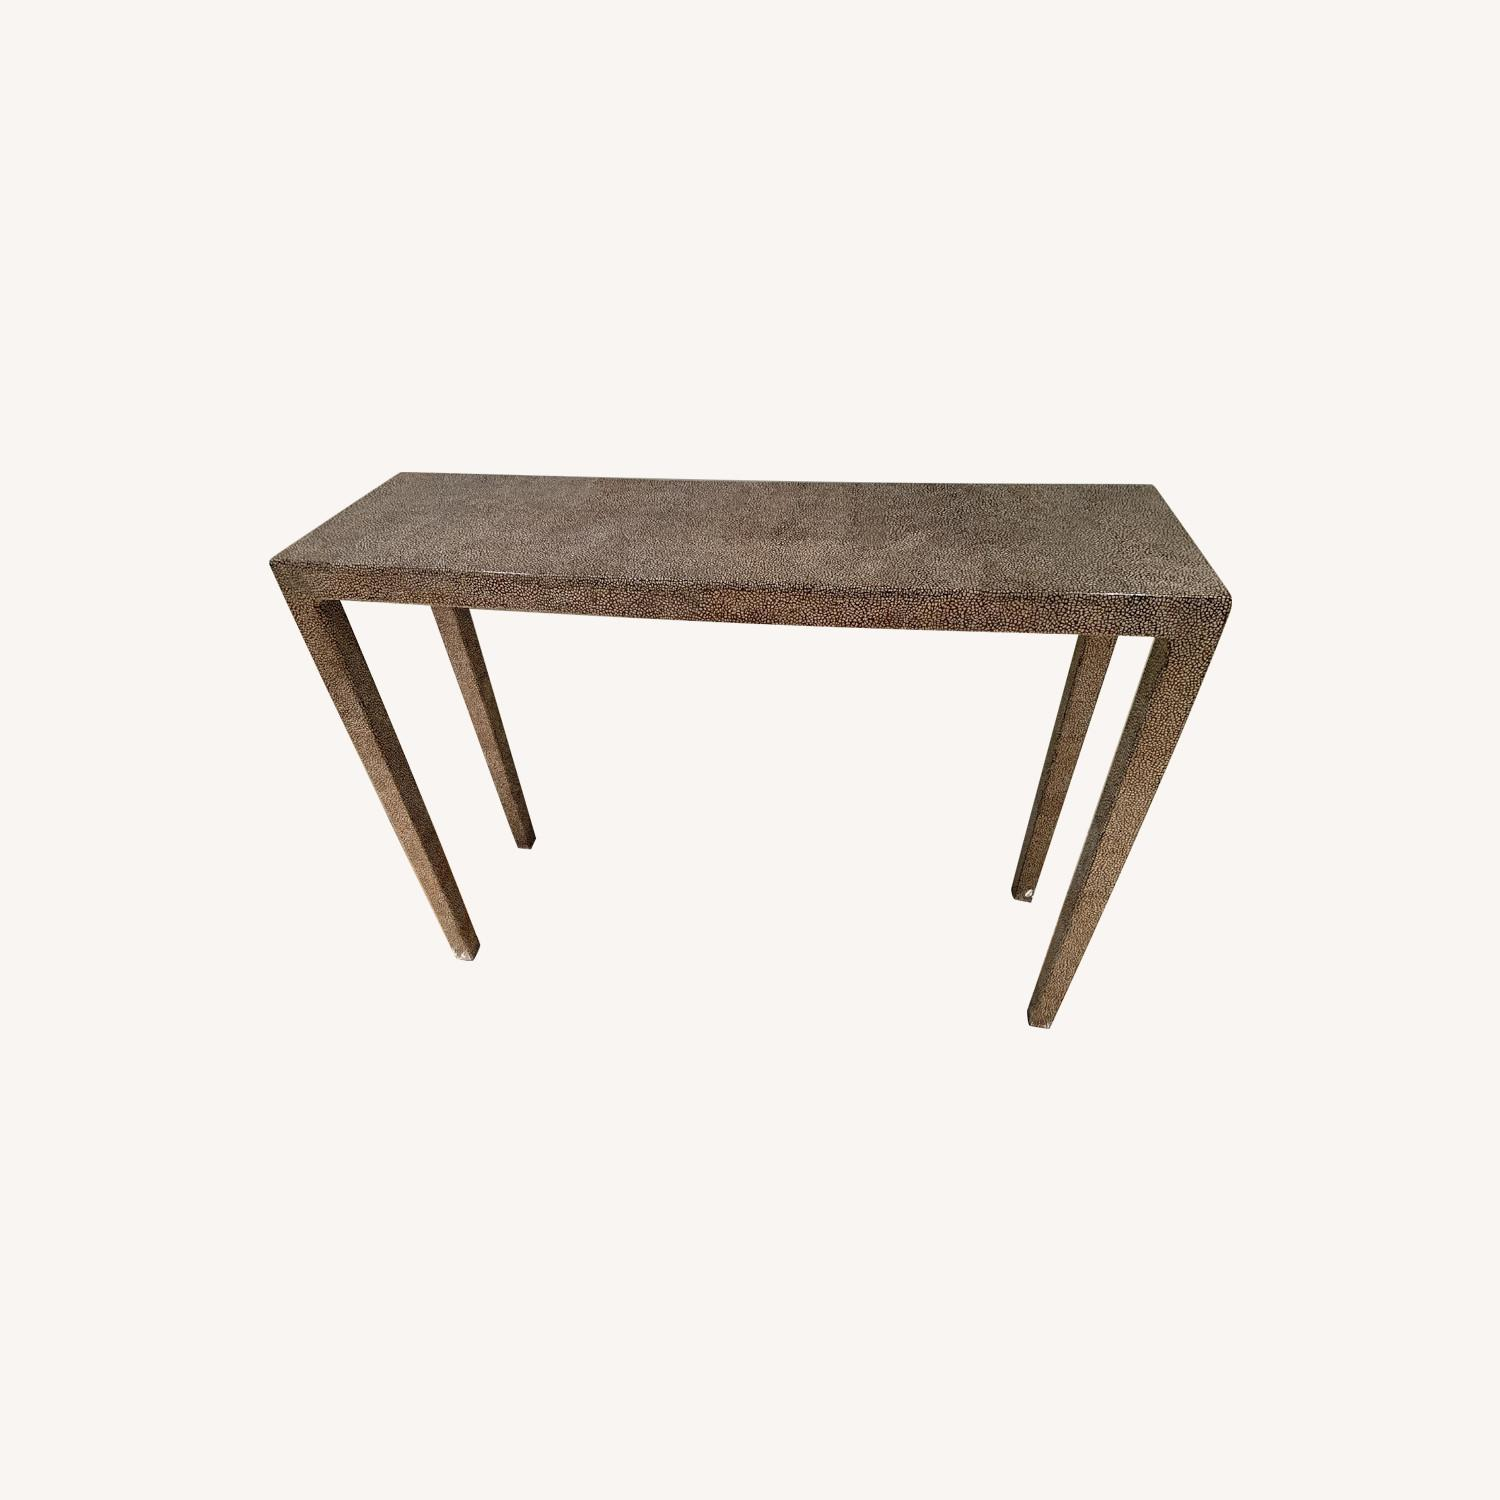 Wood Entry Table - image-0